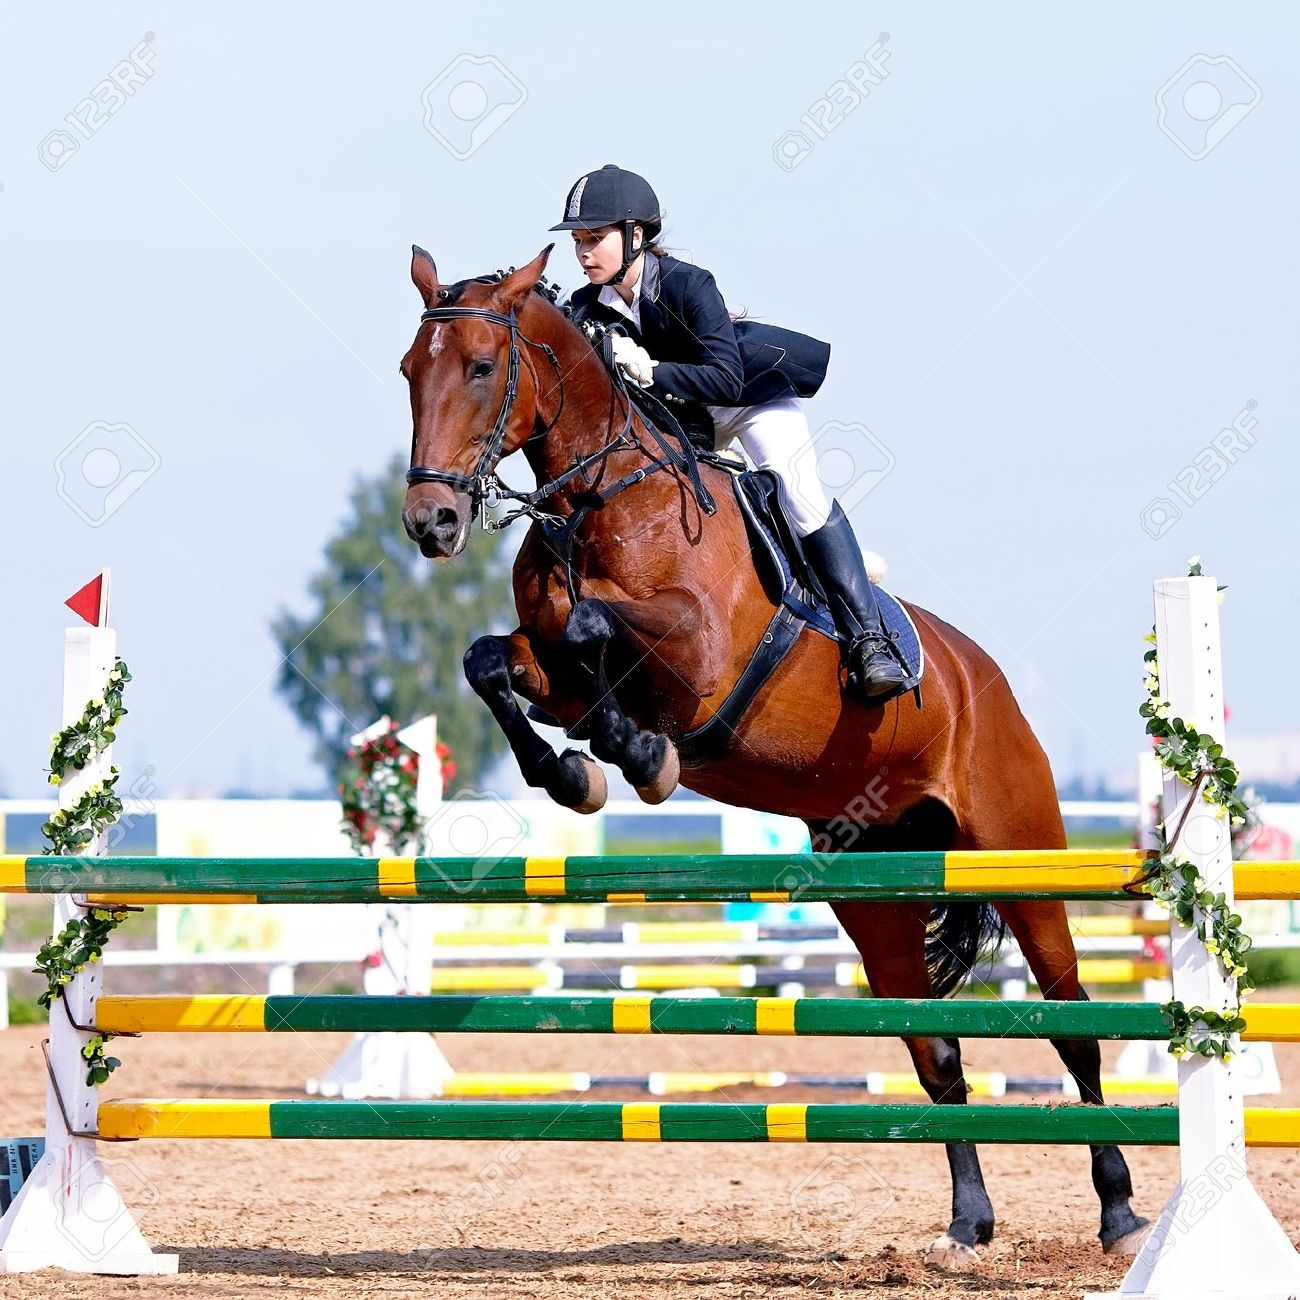 Equestrian sport. Show jumping. Overcoming of an obstacle. The sportswoman on a horse. The horsewoman on a red horse. Equestrianism. Horse riding. Horse racing. Rider on a horse. Standard-Bild - 21512323